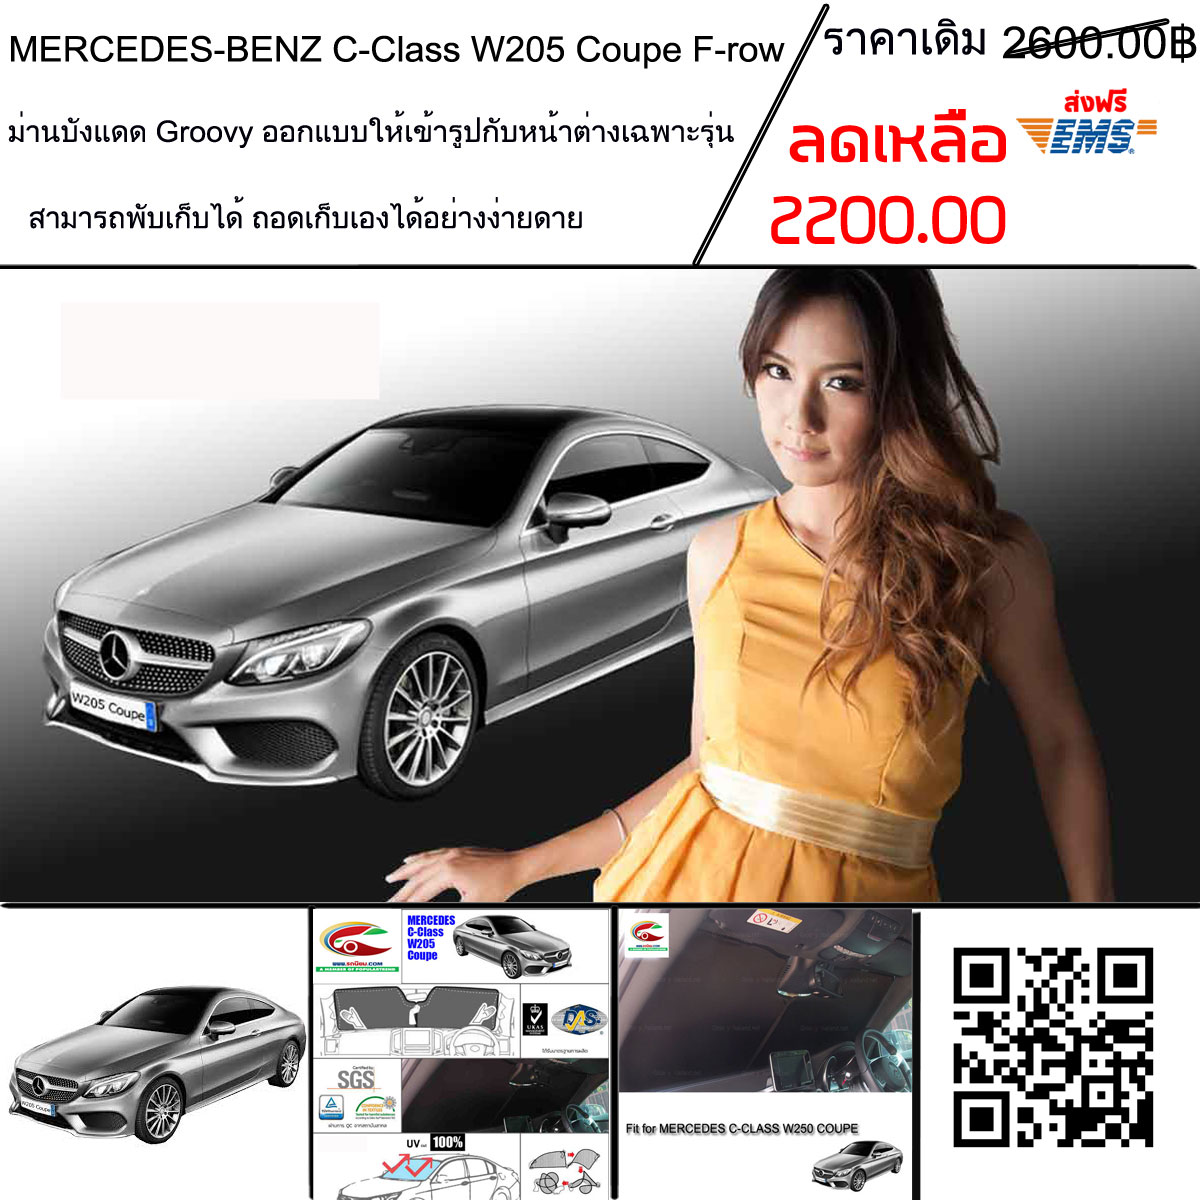 MERCEDES-BENZ-C-Class-W205-Coupe-F-row